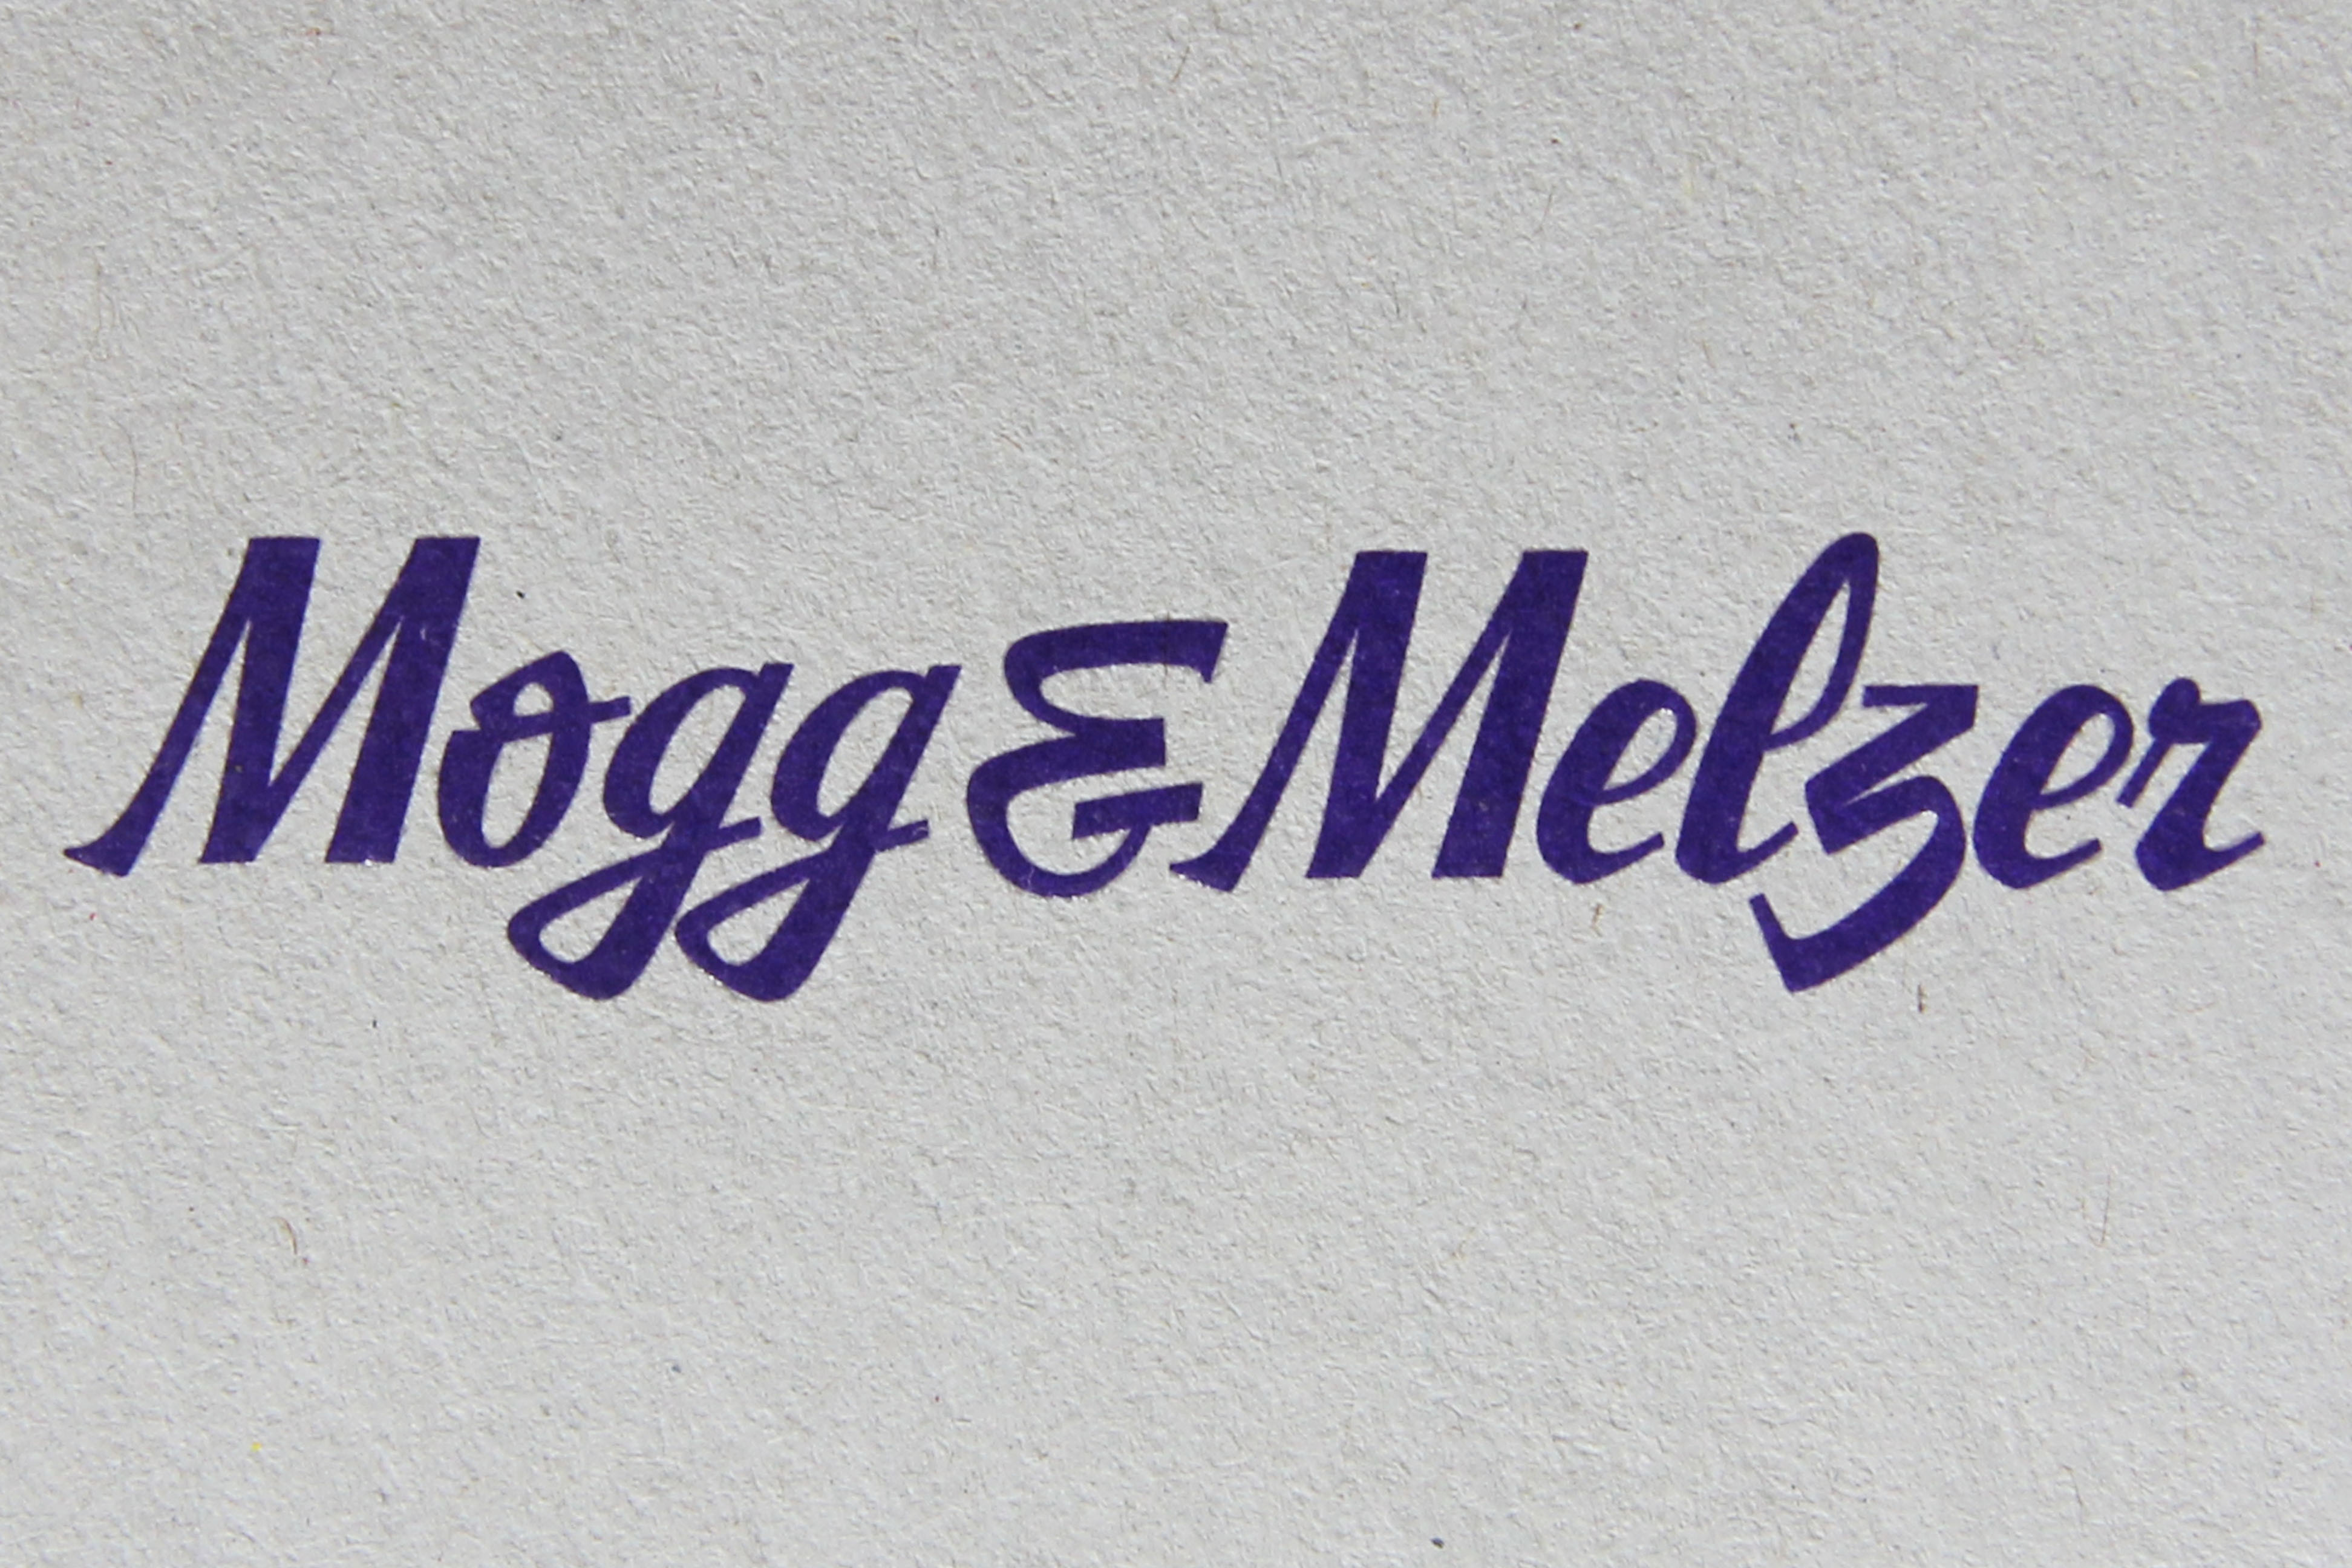 The logo of Mogg & Melzer, a deli in Berlin